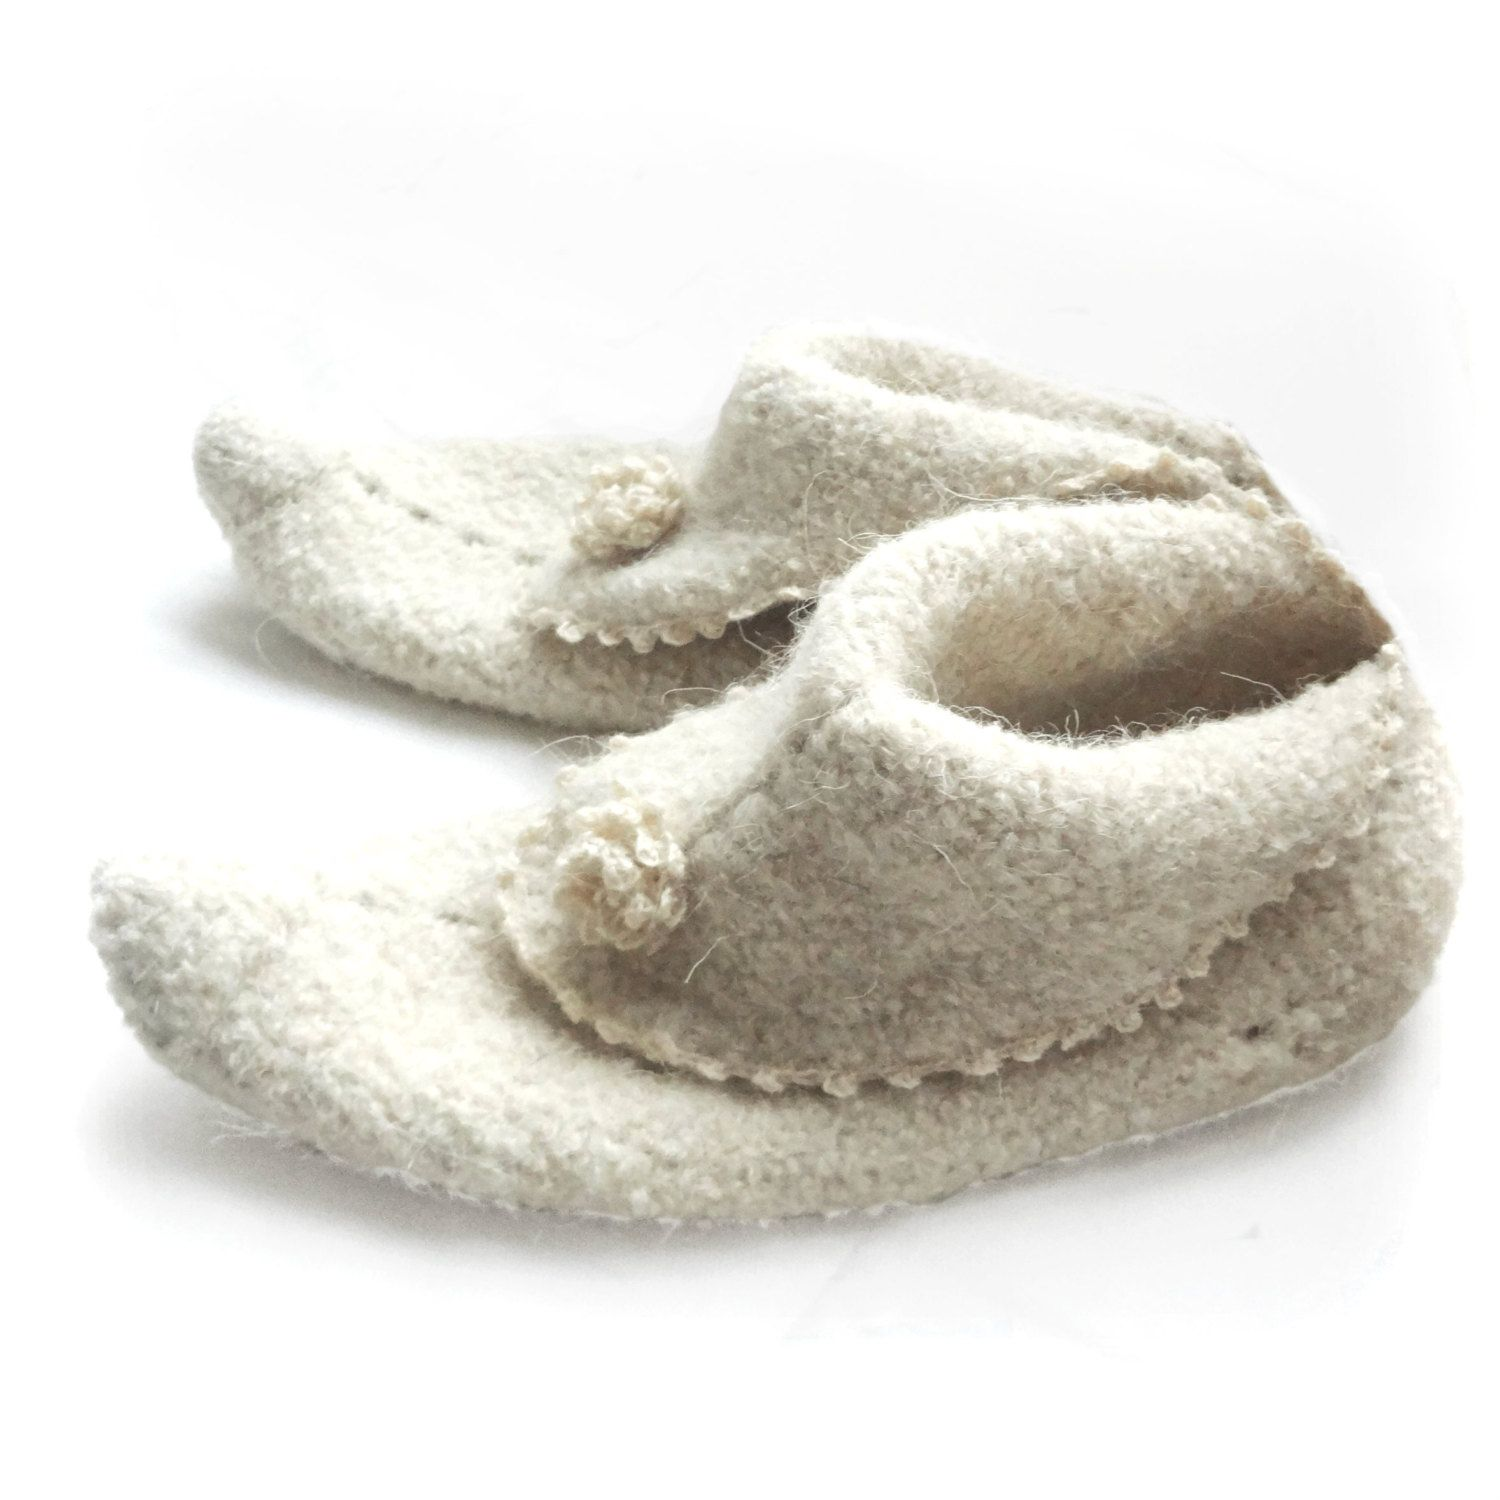 Elf Slippers Felted Crochet Slippers Scandinavian Style Natural Sheep Wool Very Warm White Ecru Knit Women Socks Crochet Slippers Felted Crochet Elf Slippers